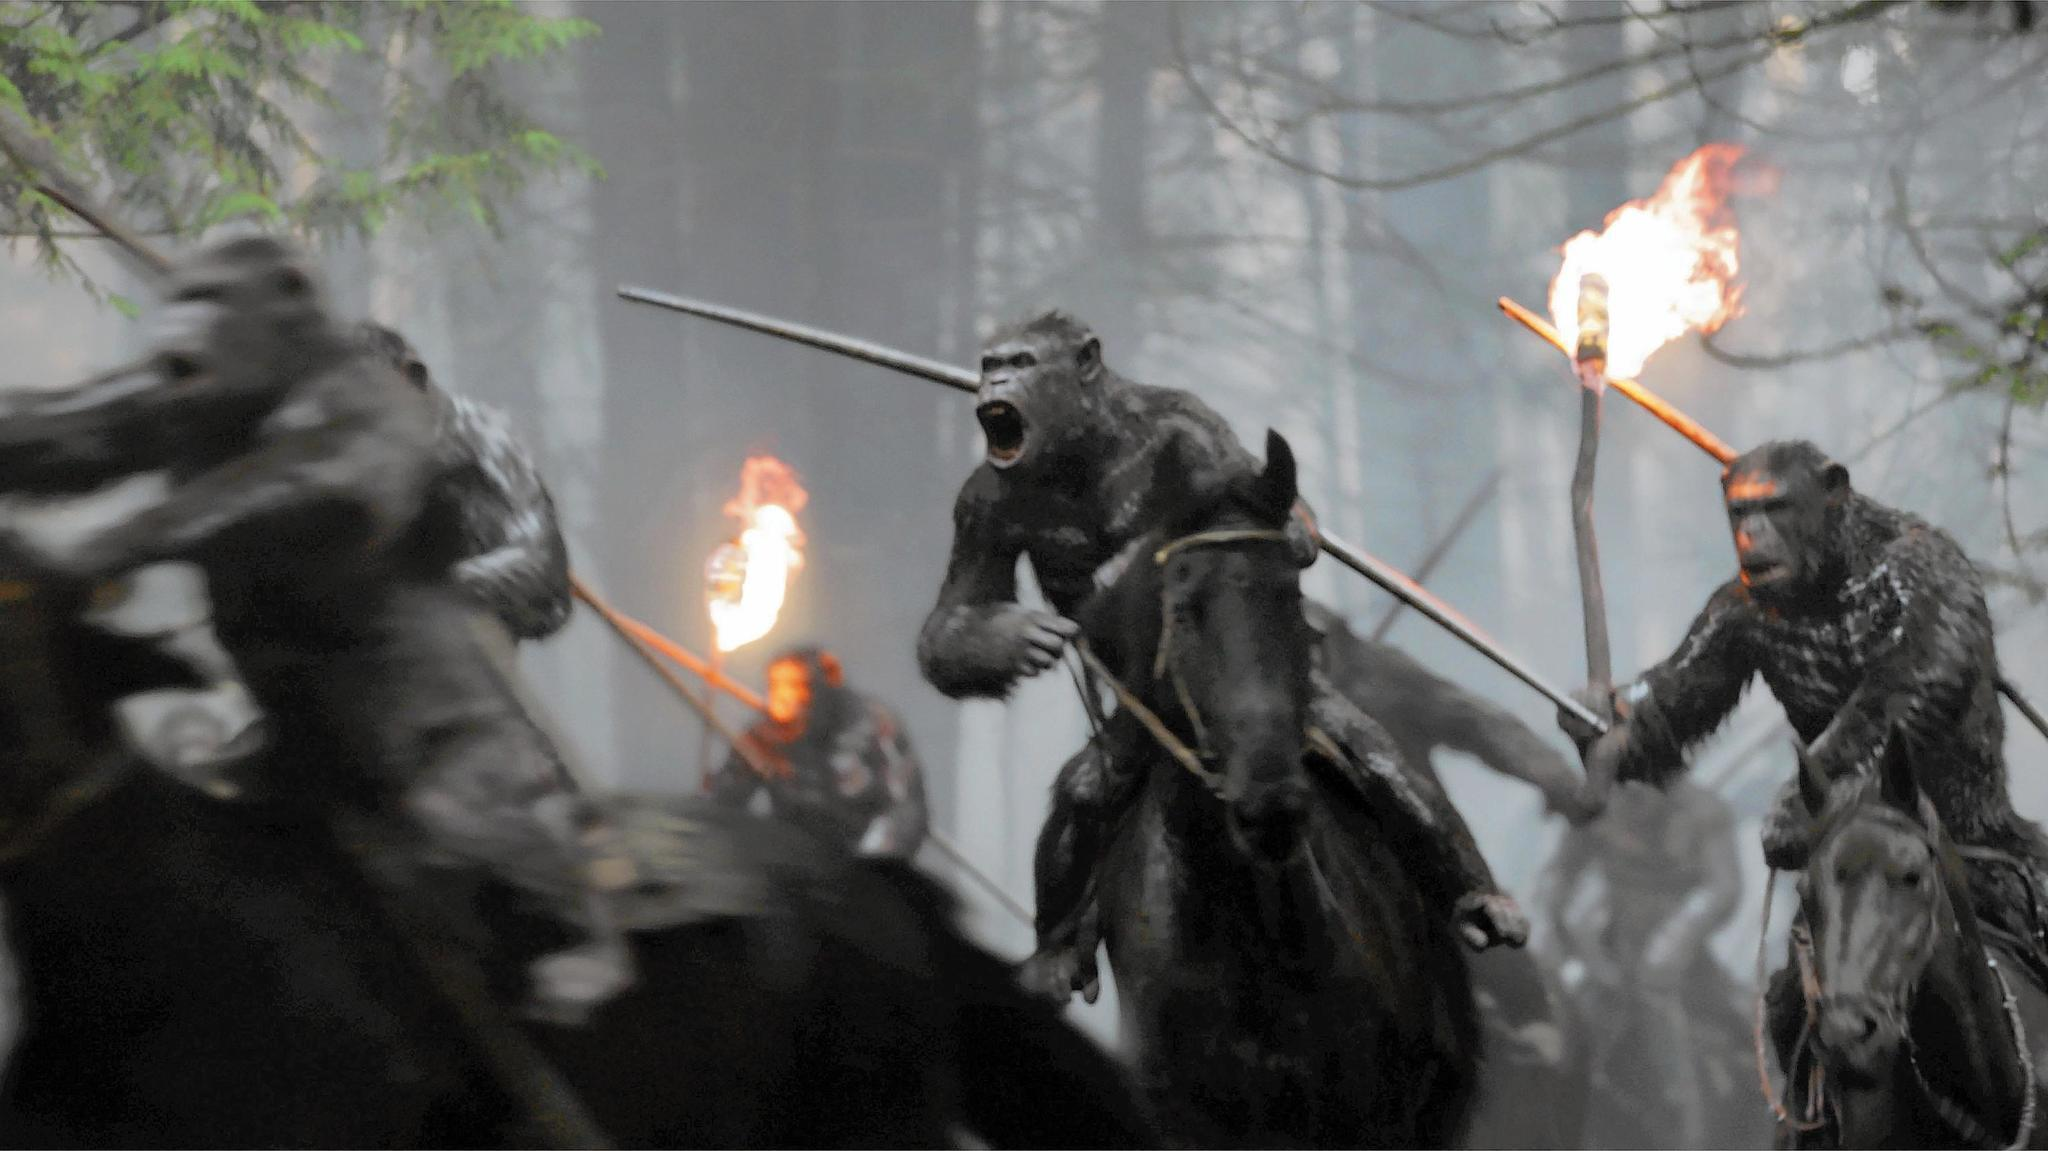 'War for the Planet of the Apes' review: The best Western of 2017